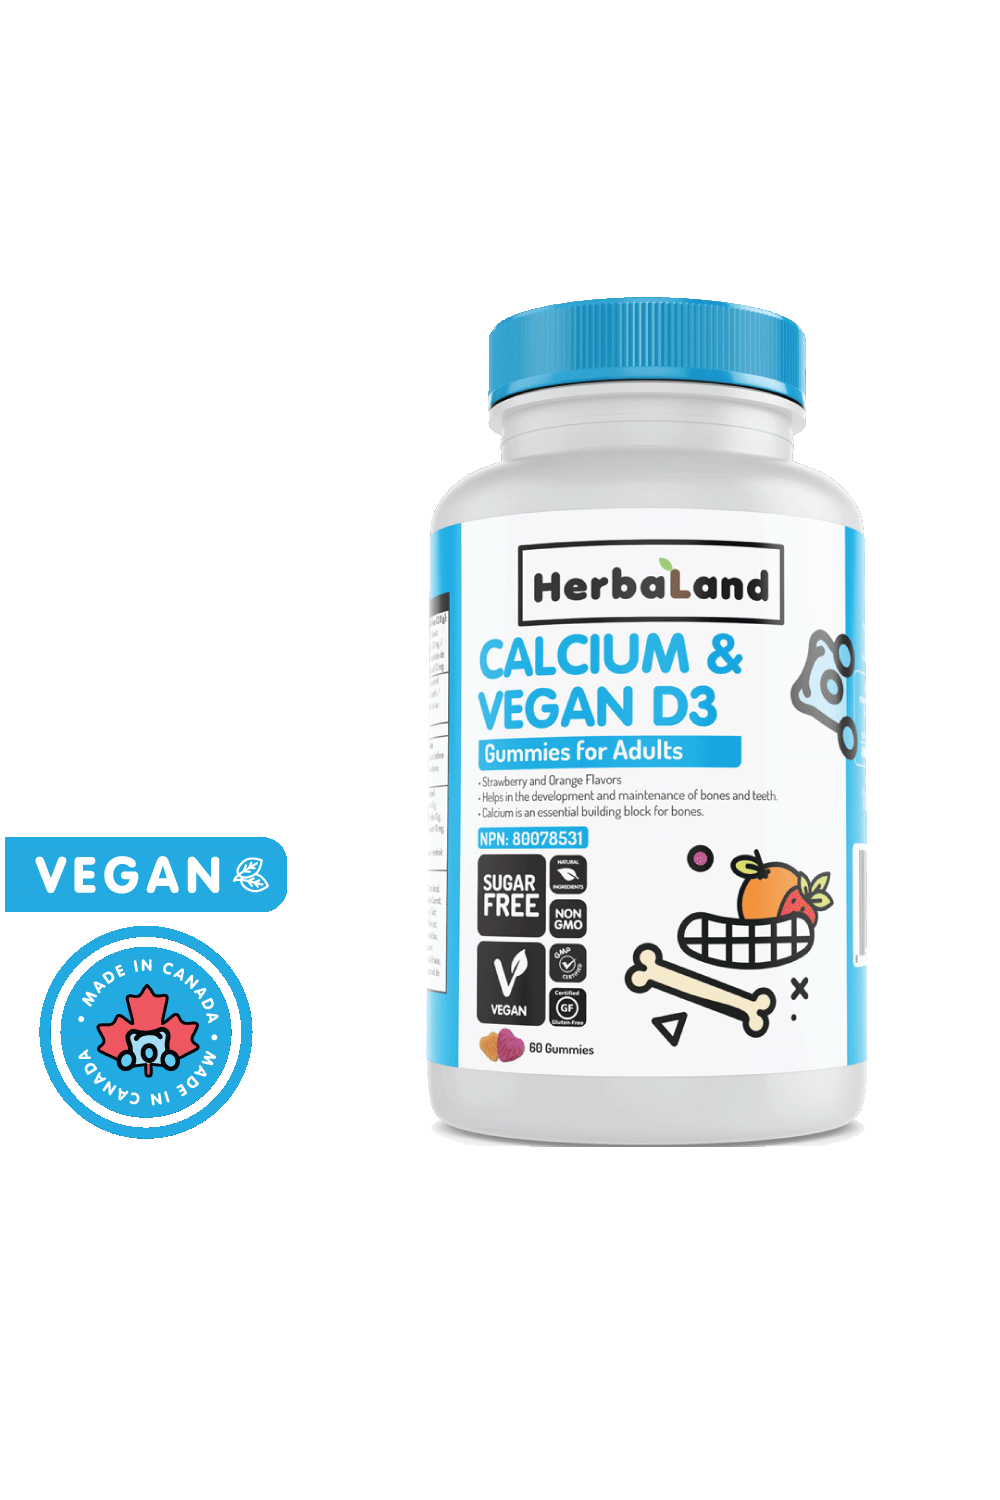 Herbaland Gummies for Adults: Calcium With Vegan D3